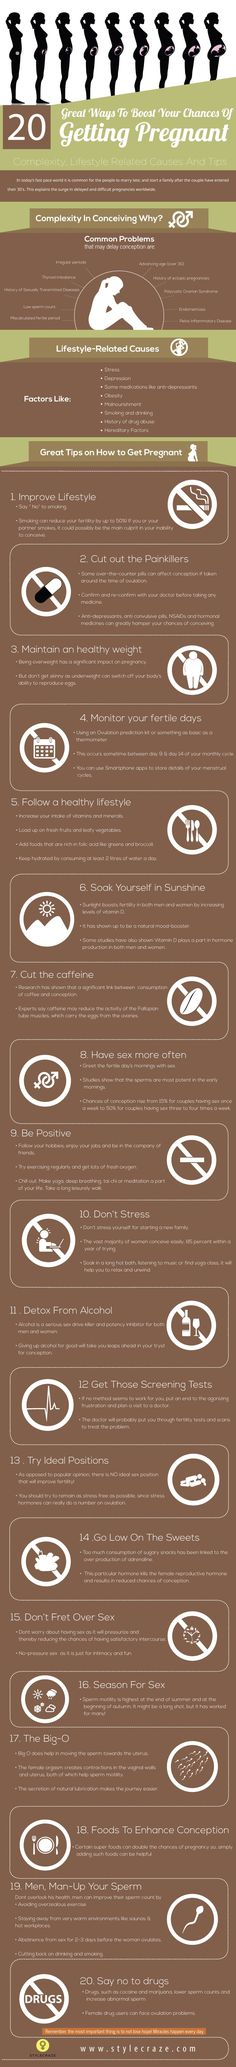 20 Great Tips To Improve Your Chances Of Getting Pregnant #PregnancyTips